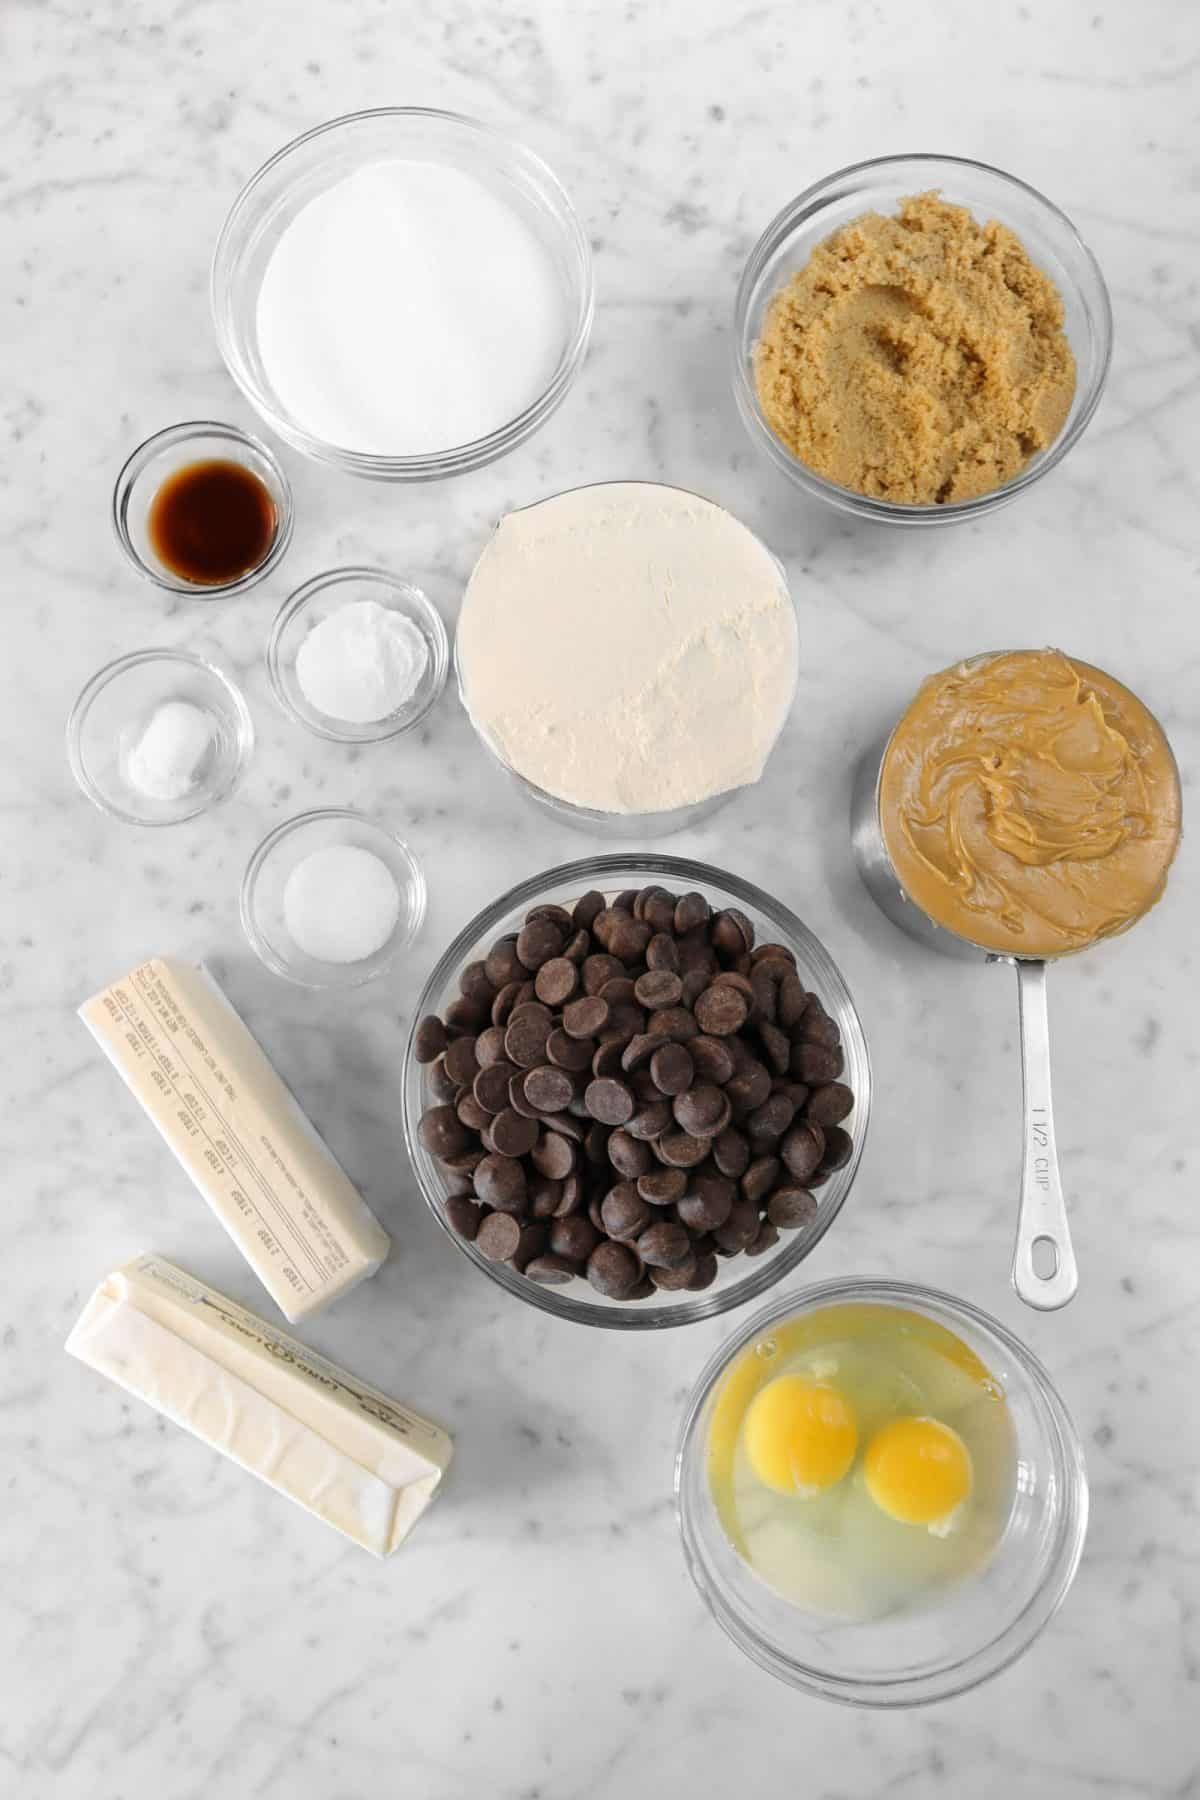 ingredients for peanut butter and chocolate chip cookies on a marble counter